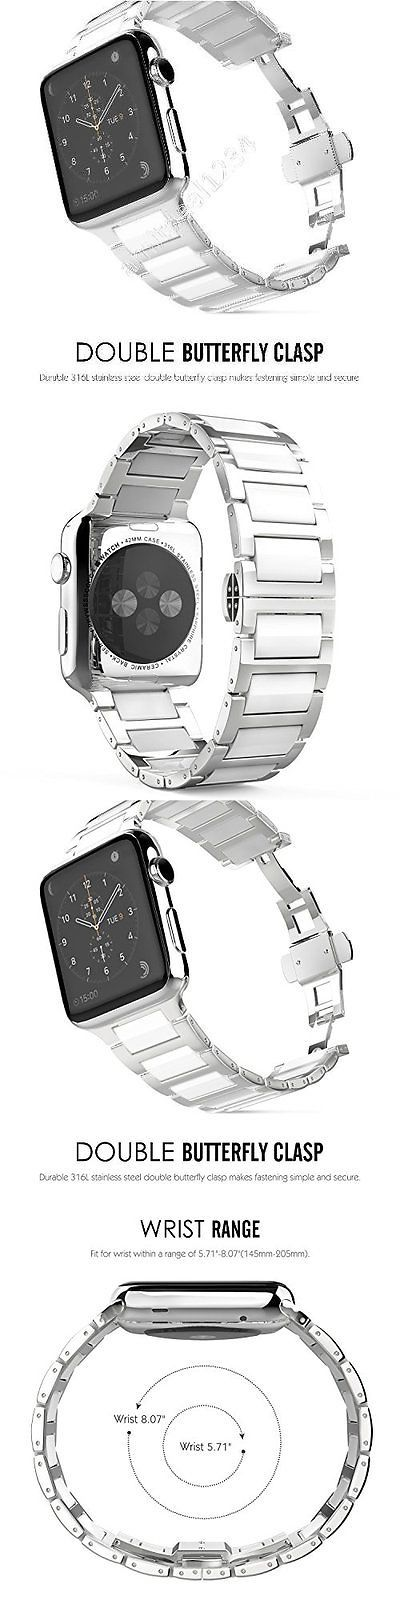 Wristwatch Bands 98624: Silver And White Steel Wristband Band Strap Bracelet For Iwatch 42Mm Apple Watch -> BUY IT NOW ONLY: $38.94 on eBay!